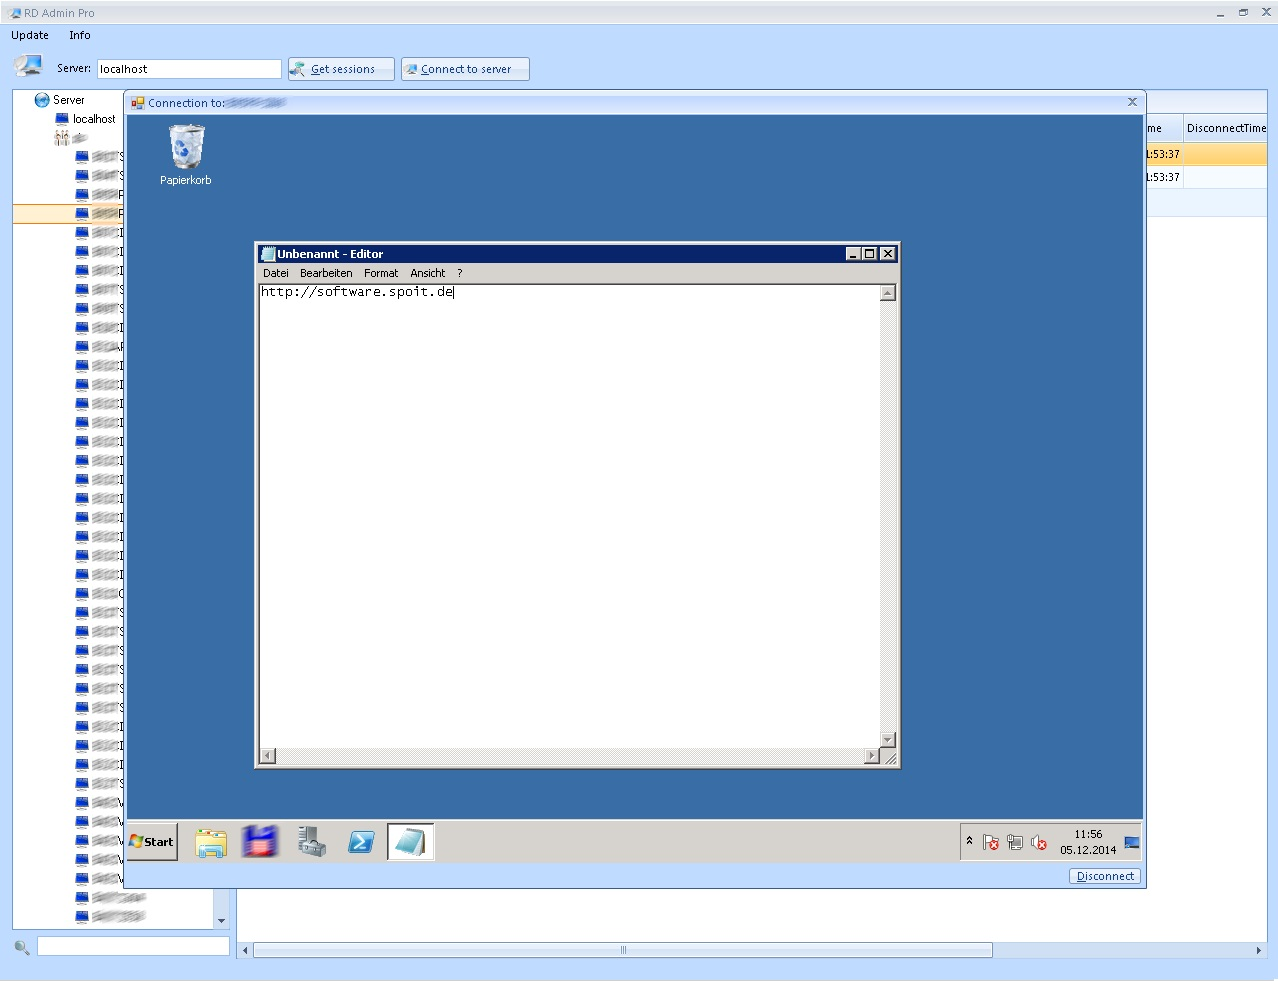 Integretated remote desktop client